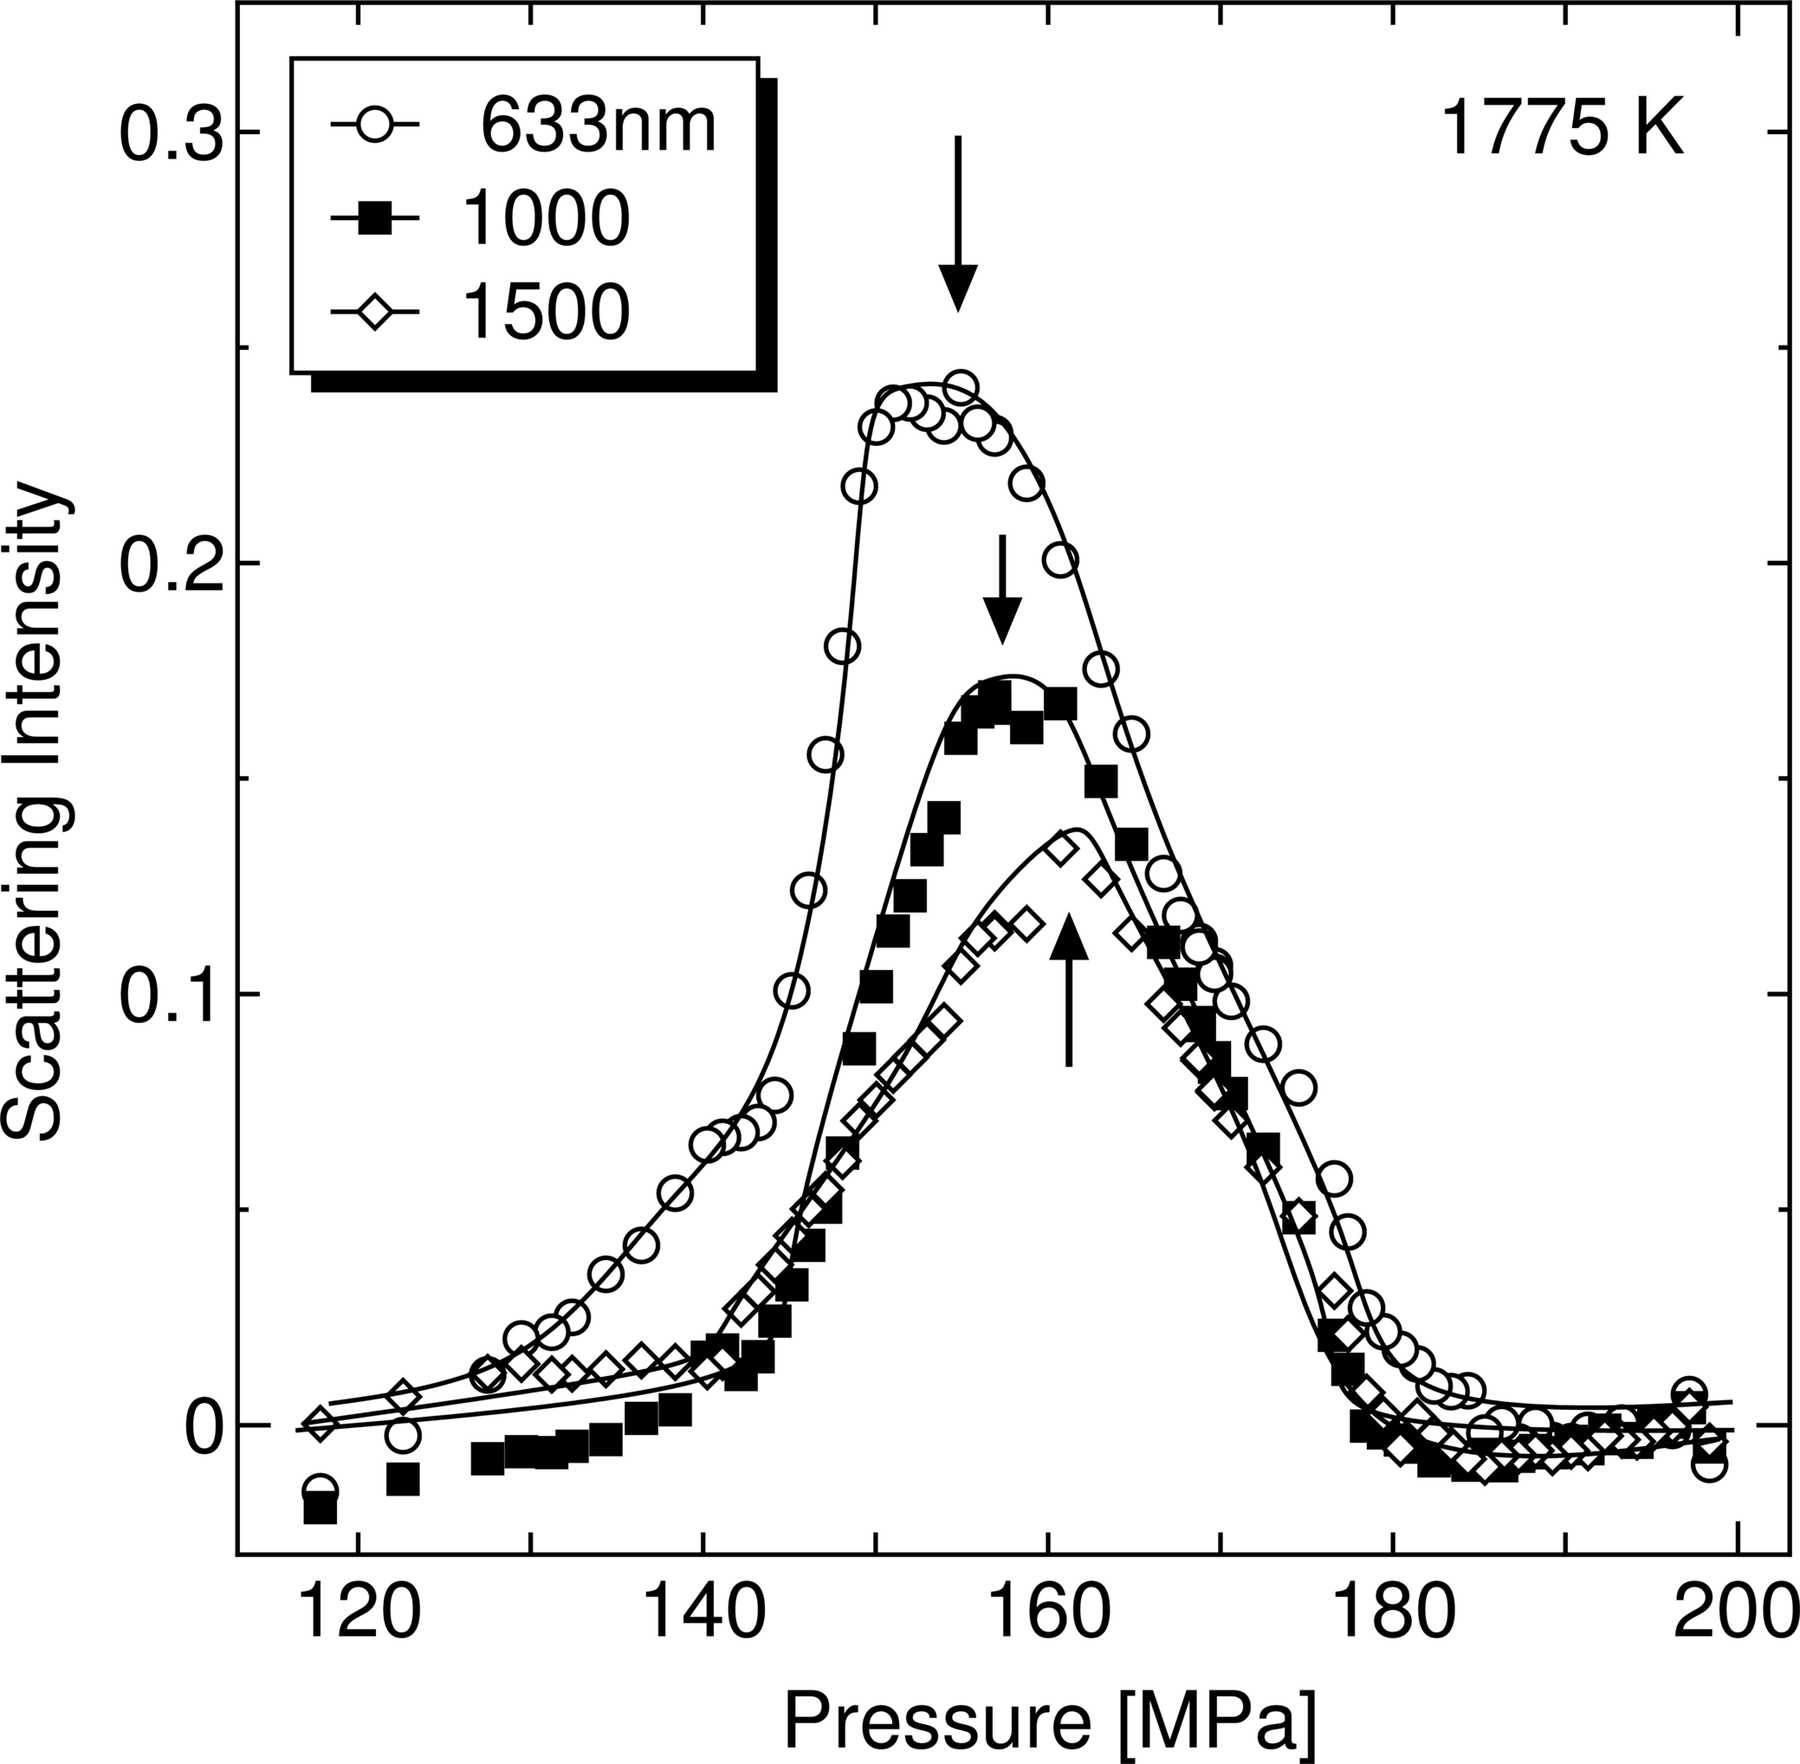 Iucr Thermal Radiation Method Proposal Of A New Technique For Measuring Interfacial Or